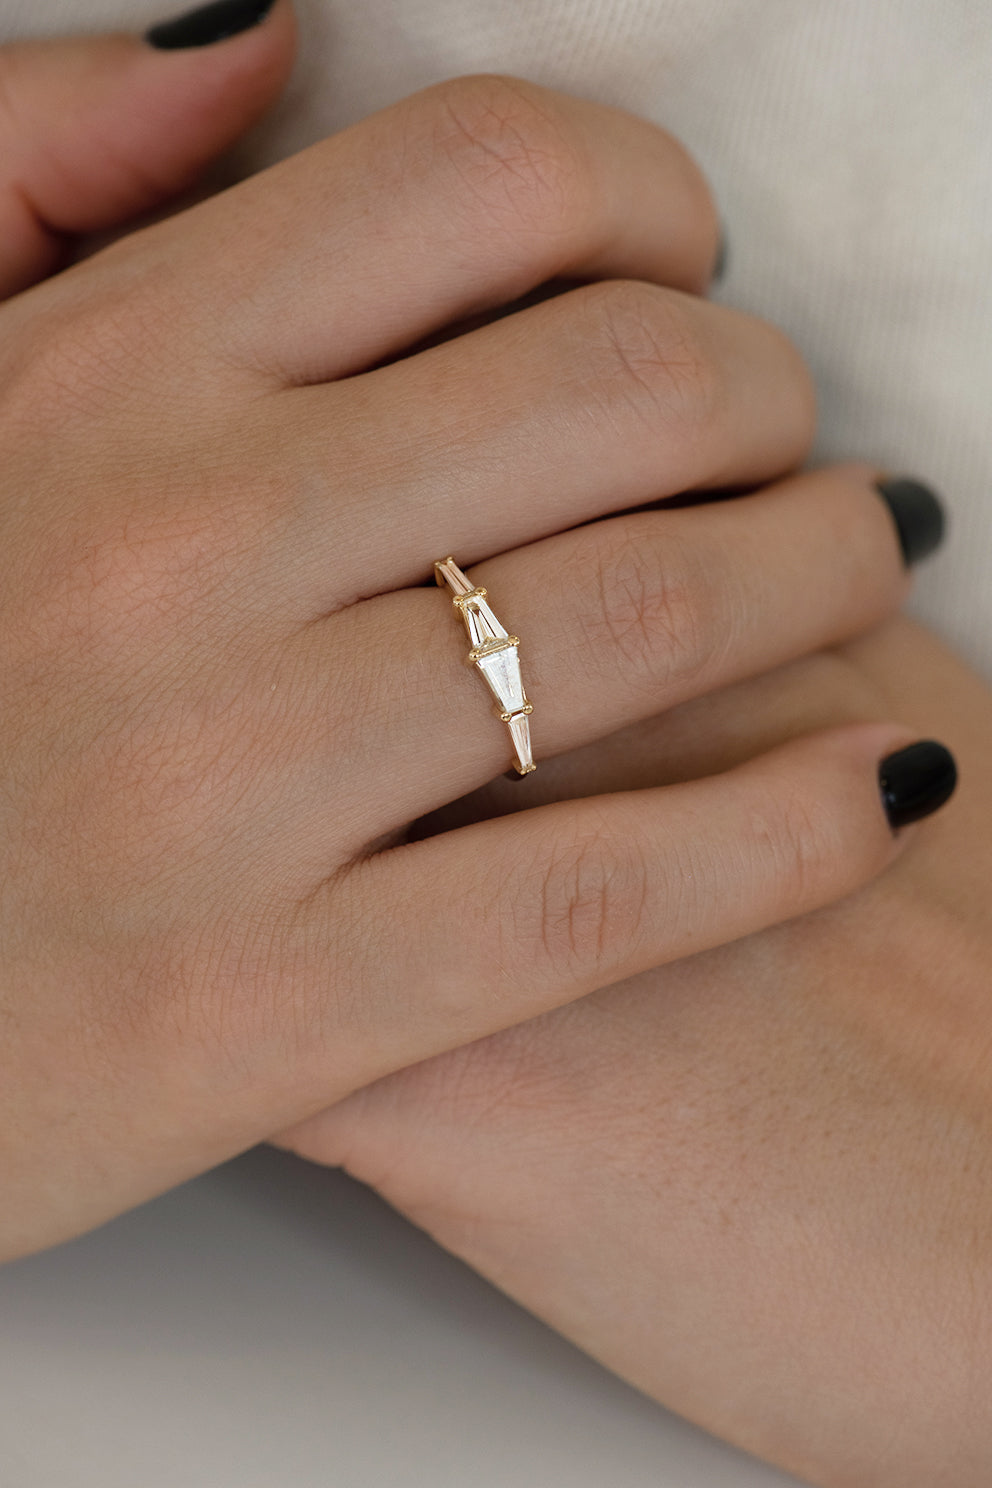 Tapered Baguette Engagement Ring on Hand